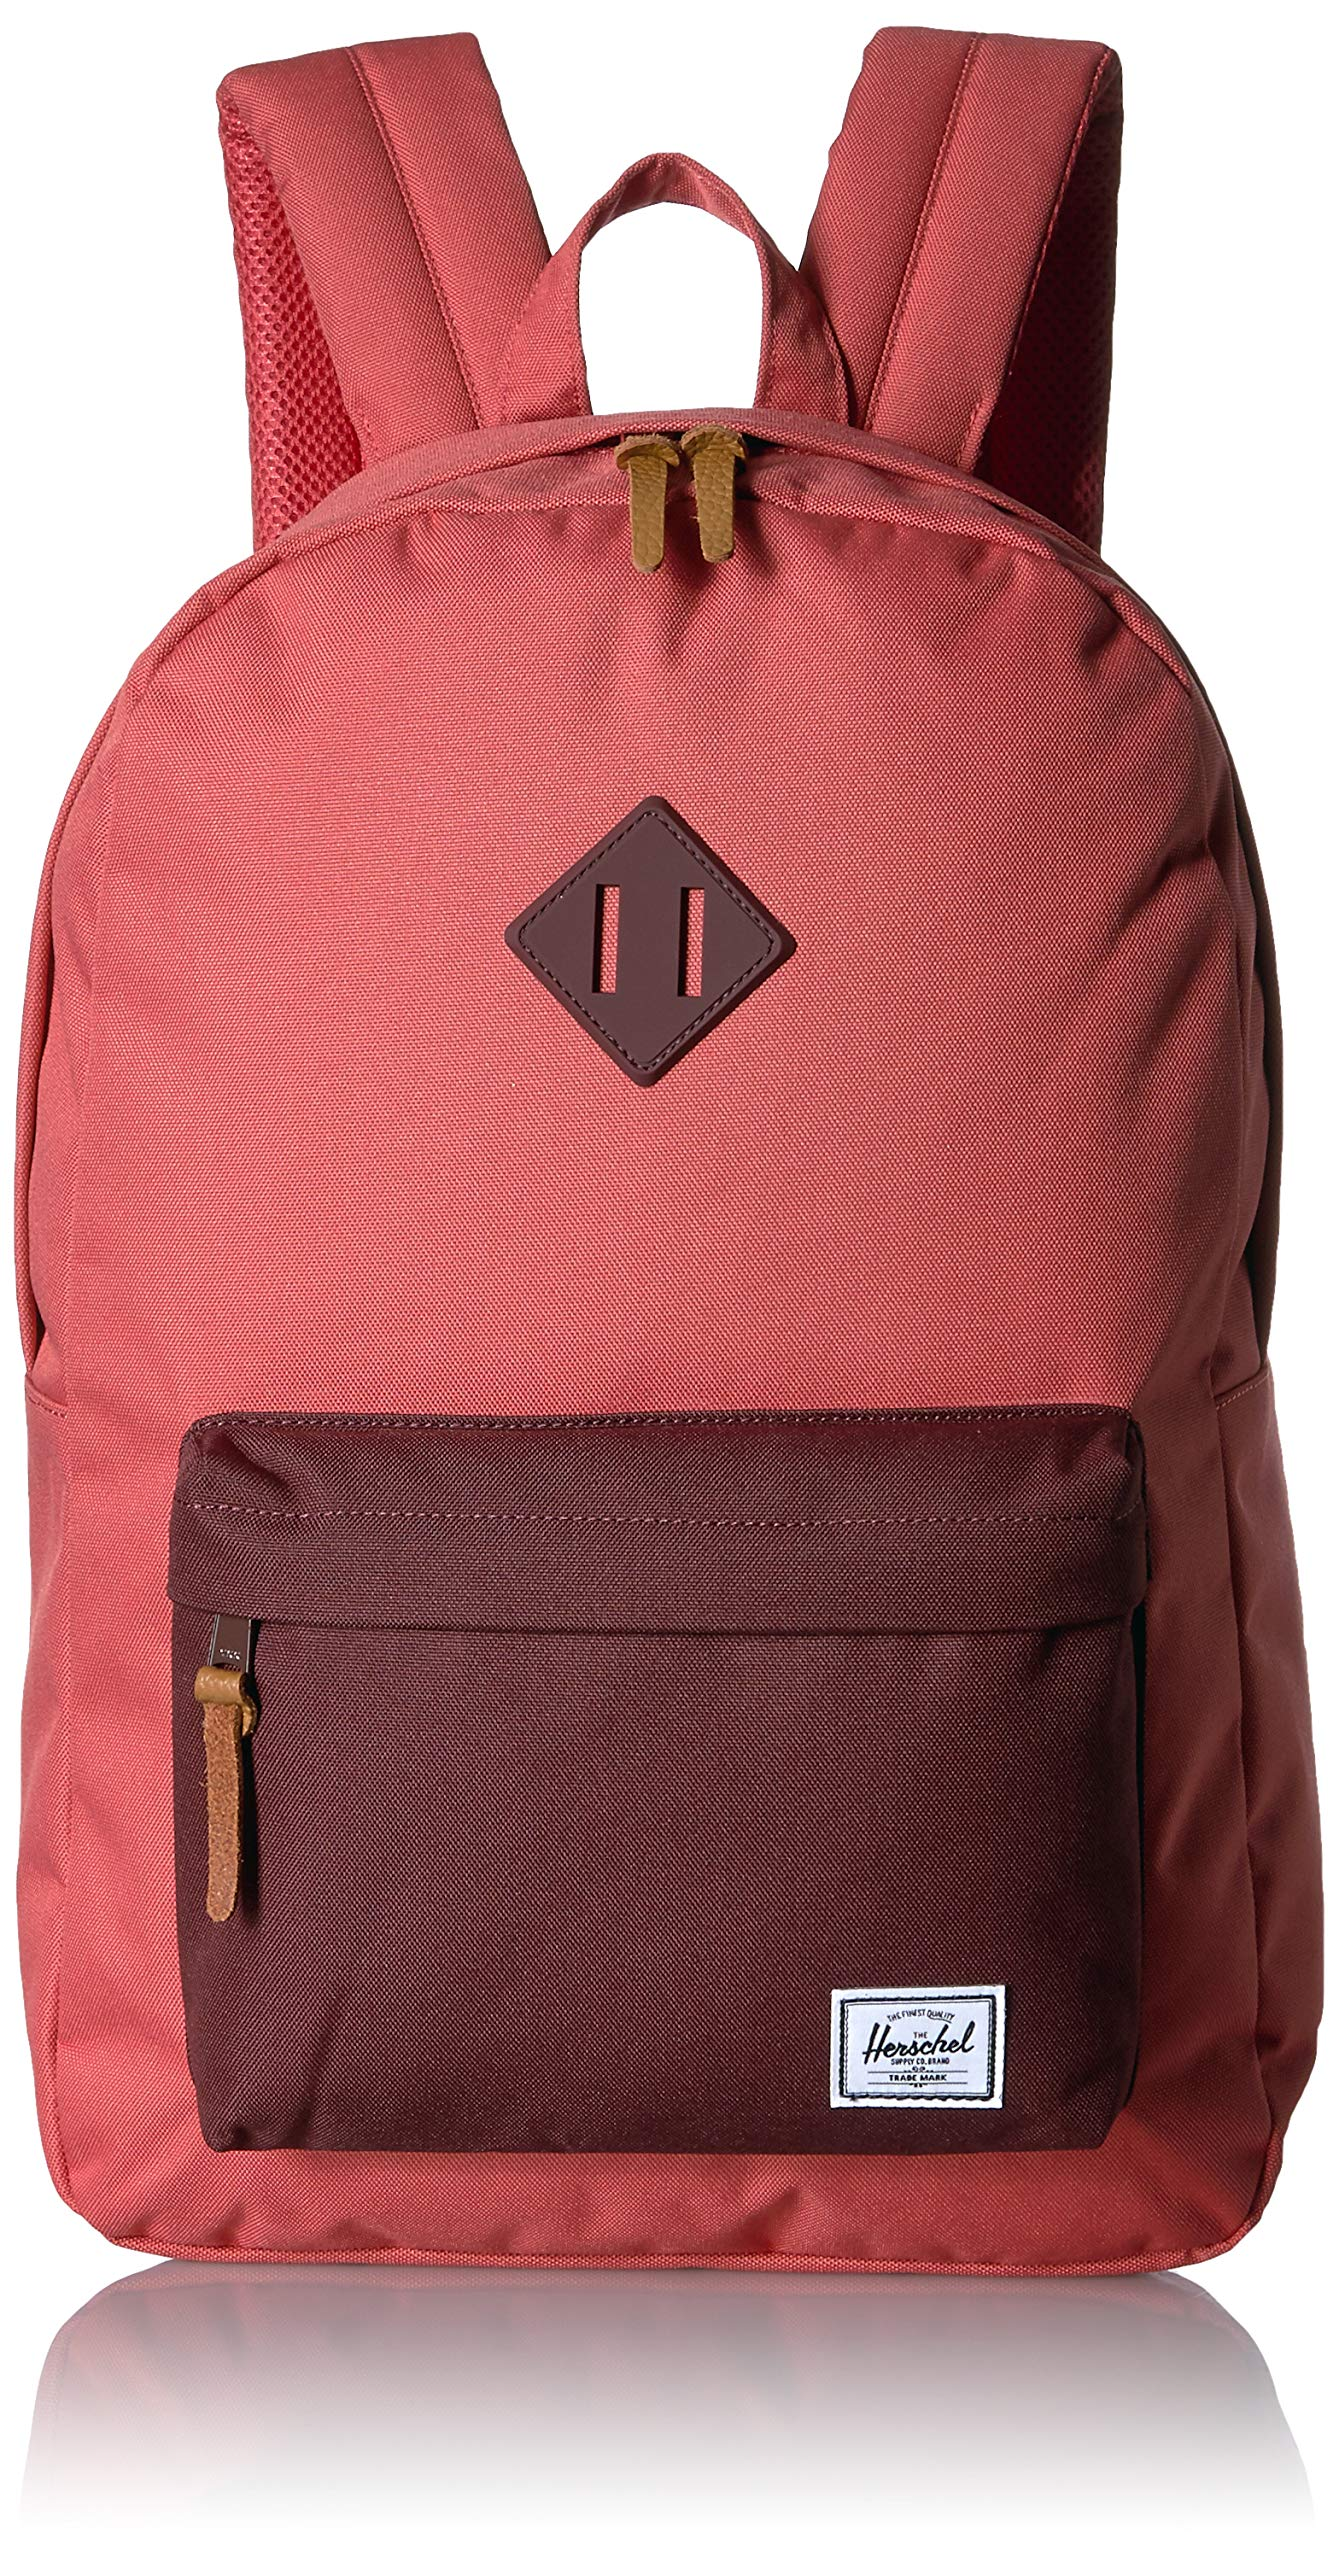 Herschel Heritage Backpack, Mineral Red/Plum, One Size